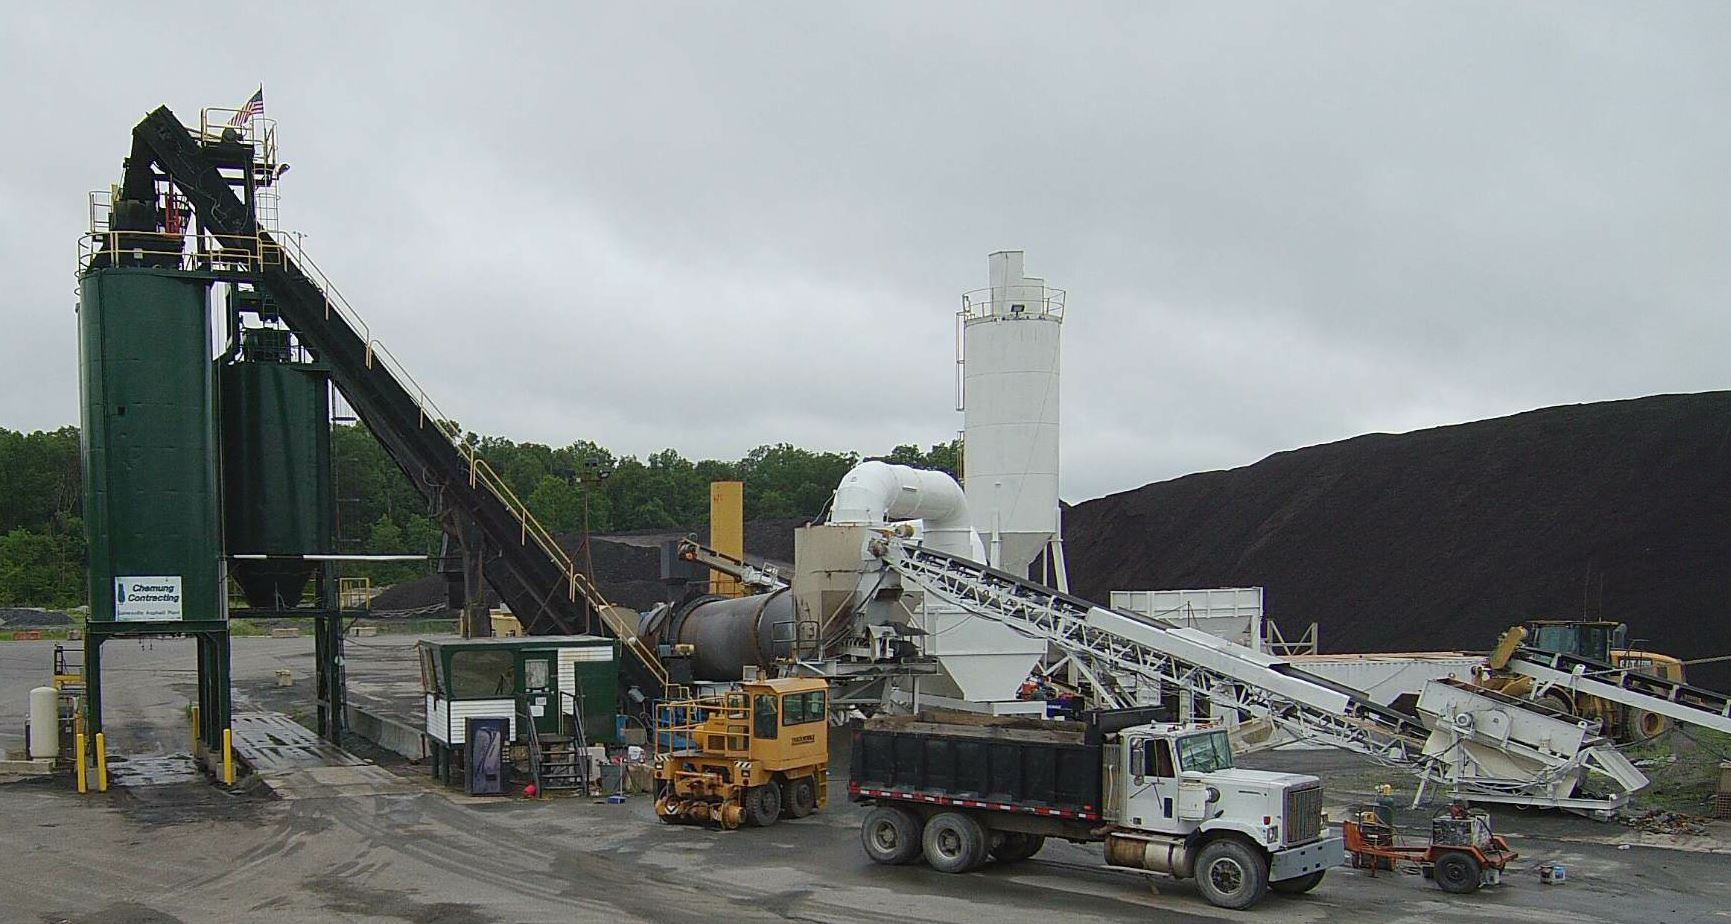 Chemung's Gainesville plant is a CMI counterflow with a Gencor drum, producing 250 tph. In addition to its Gainesville and Culpeper plants, Chemung also has two plants in Seneca Falls, New York, including a Barber Green parallel flow drum plant (250 tph) and a Cedar Rapids batch plant (200 tph).